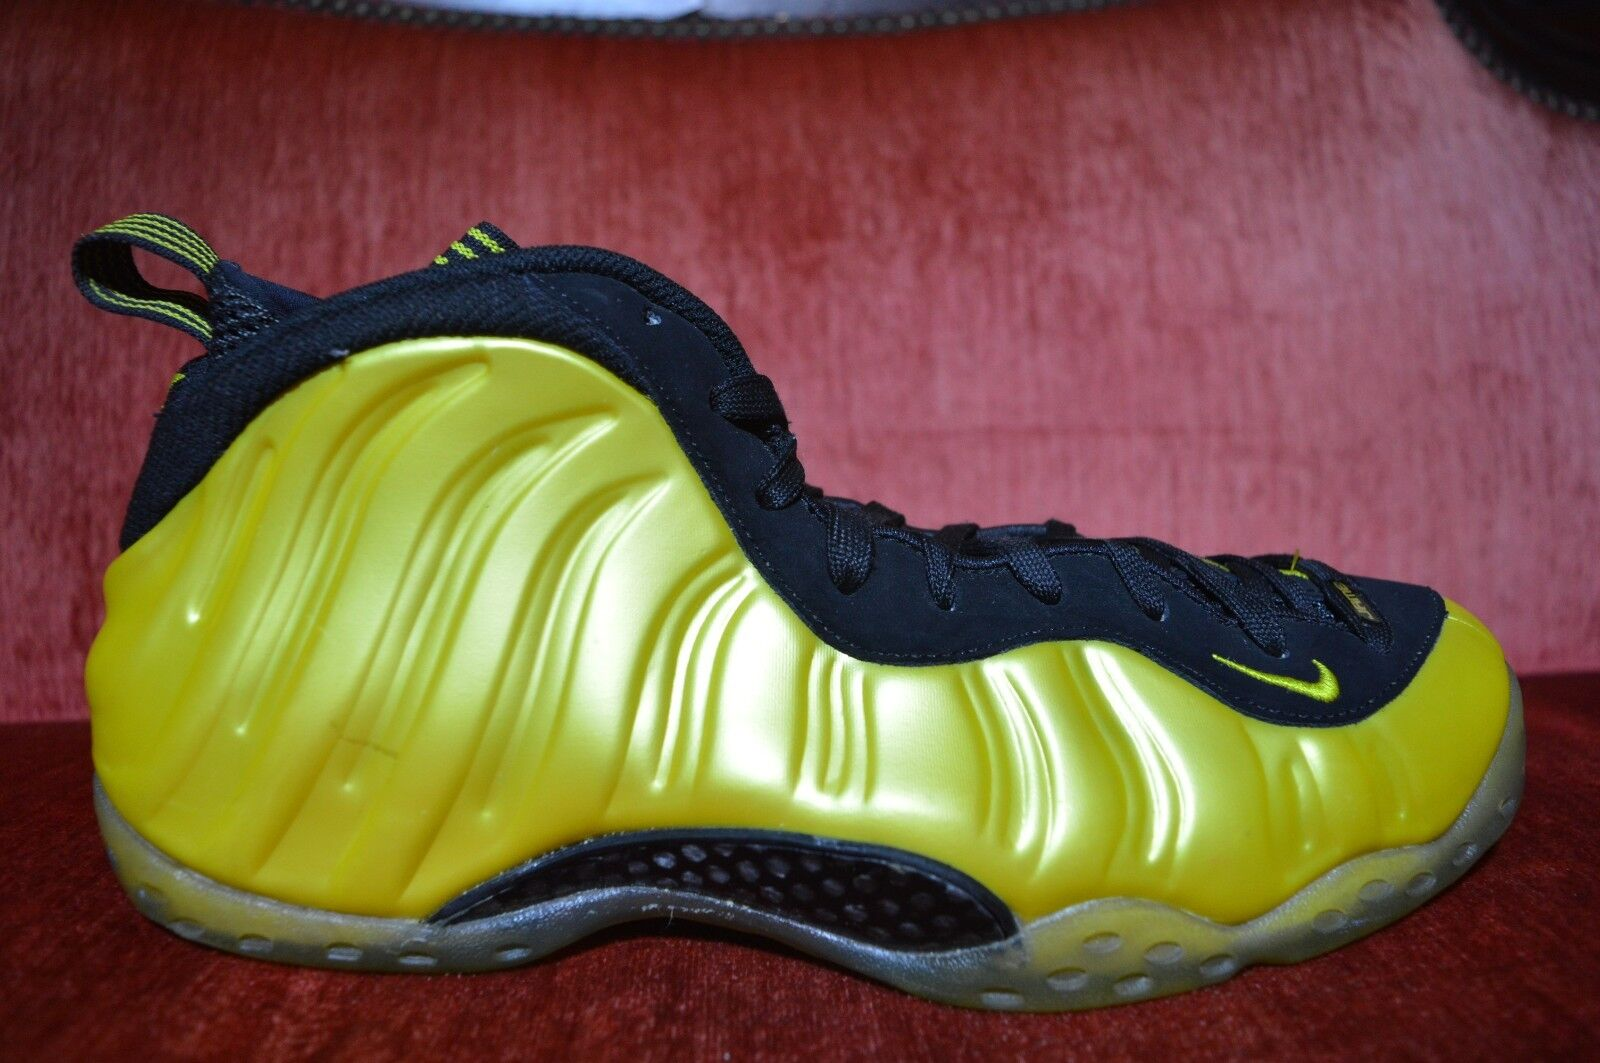 NIKE AIR FOAMPOSITE ONE 1 PENNY ELECTROLIME YELLOW BLACK WHITE 314996-330 10.5